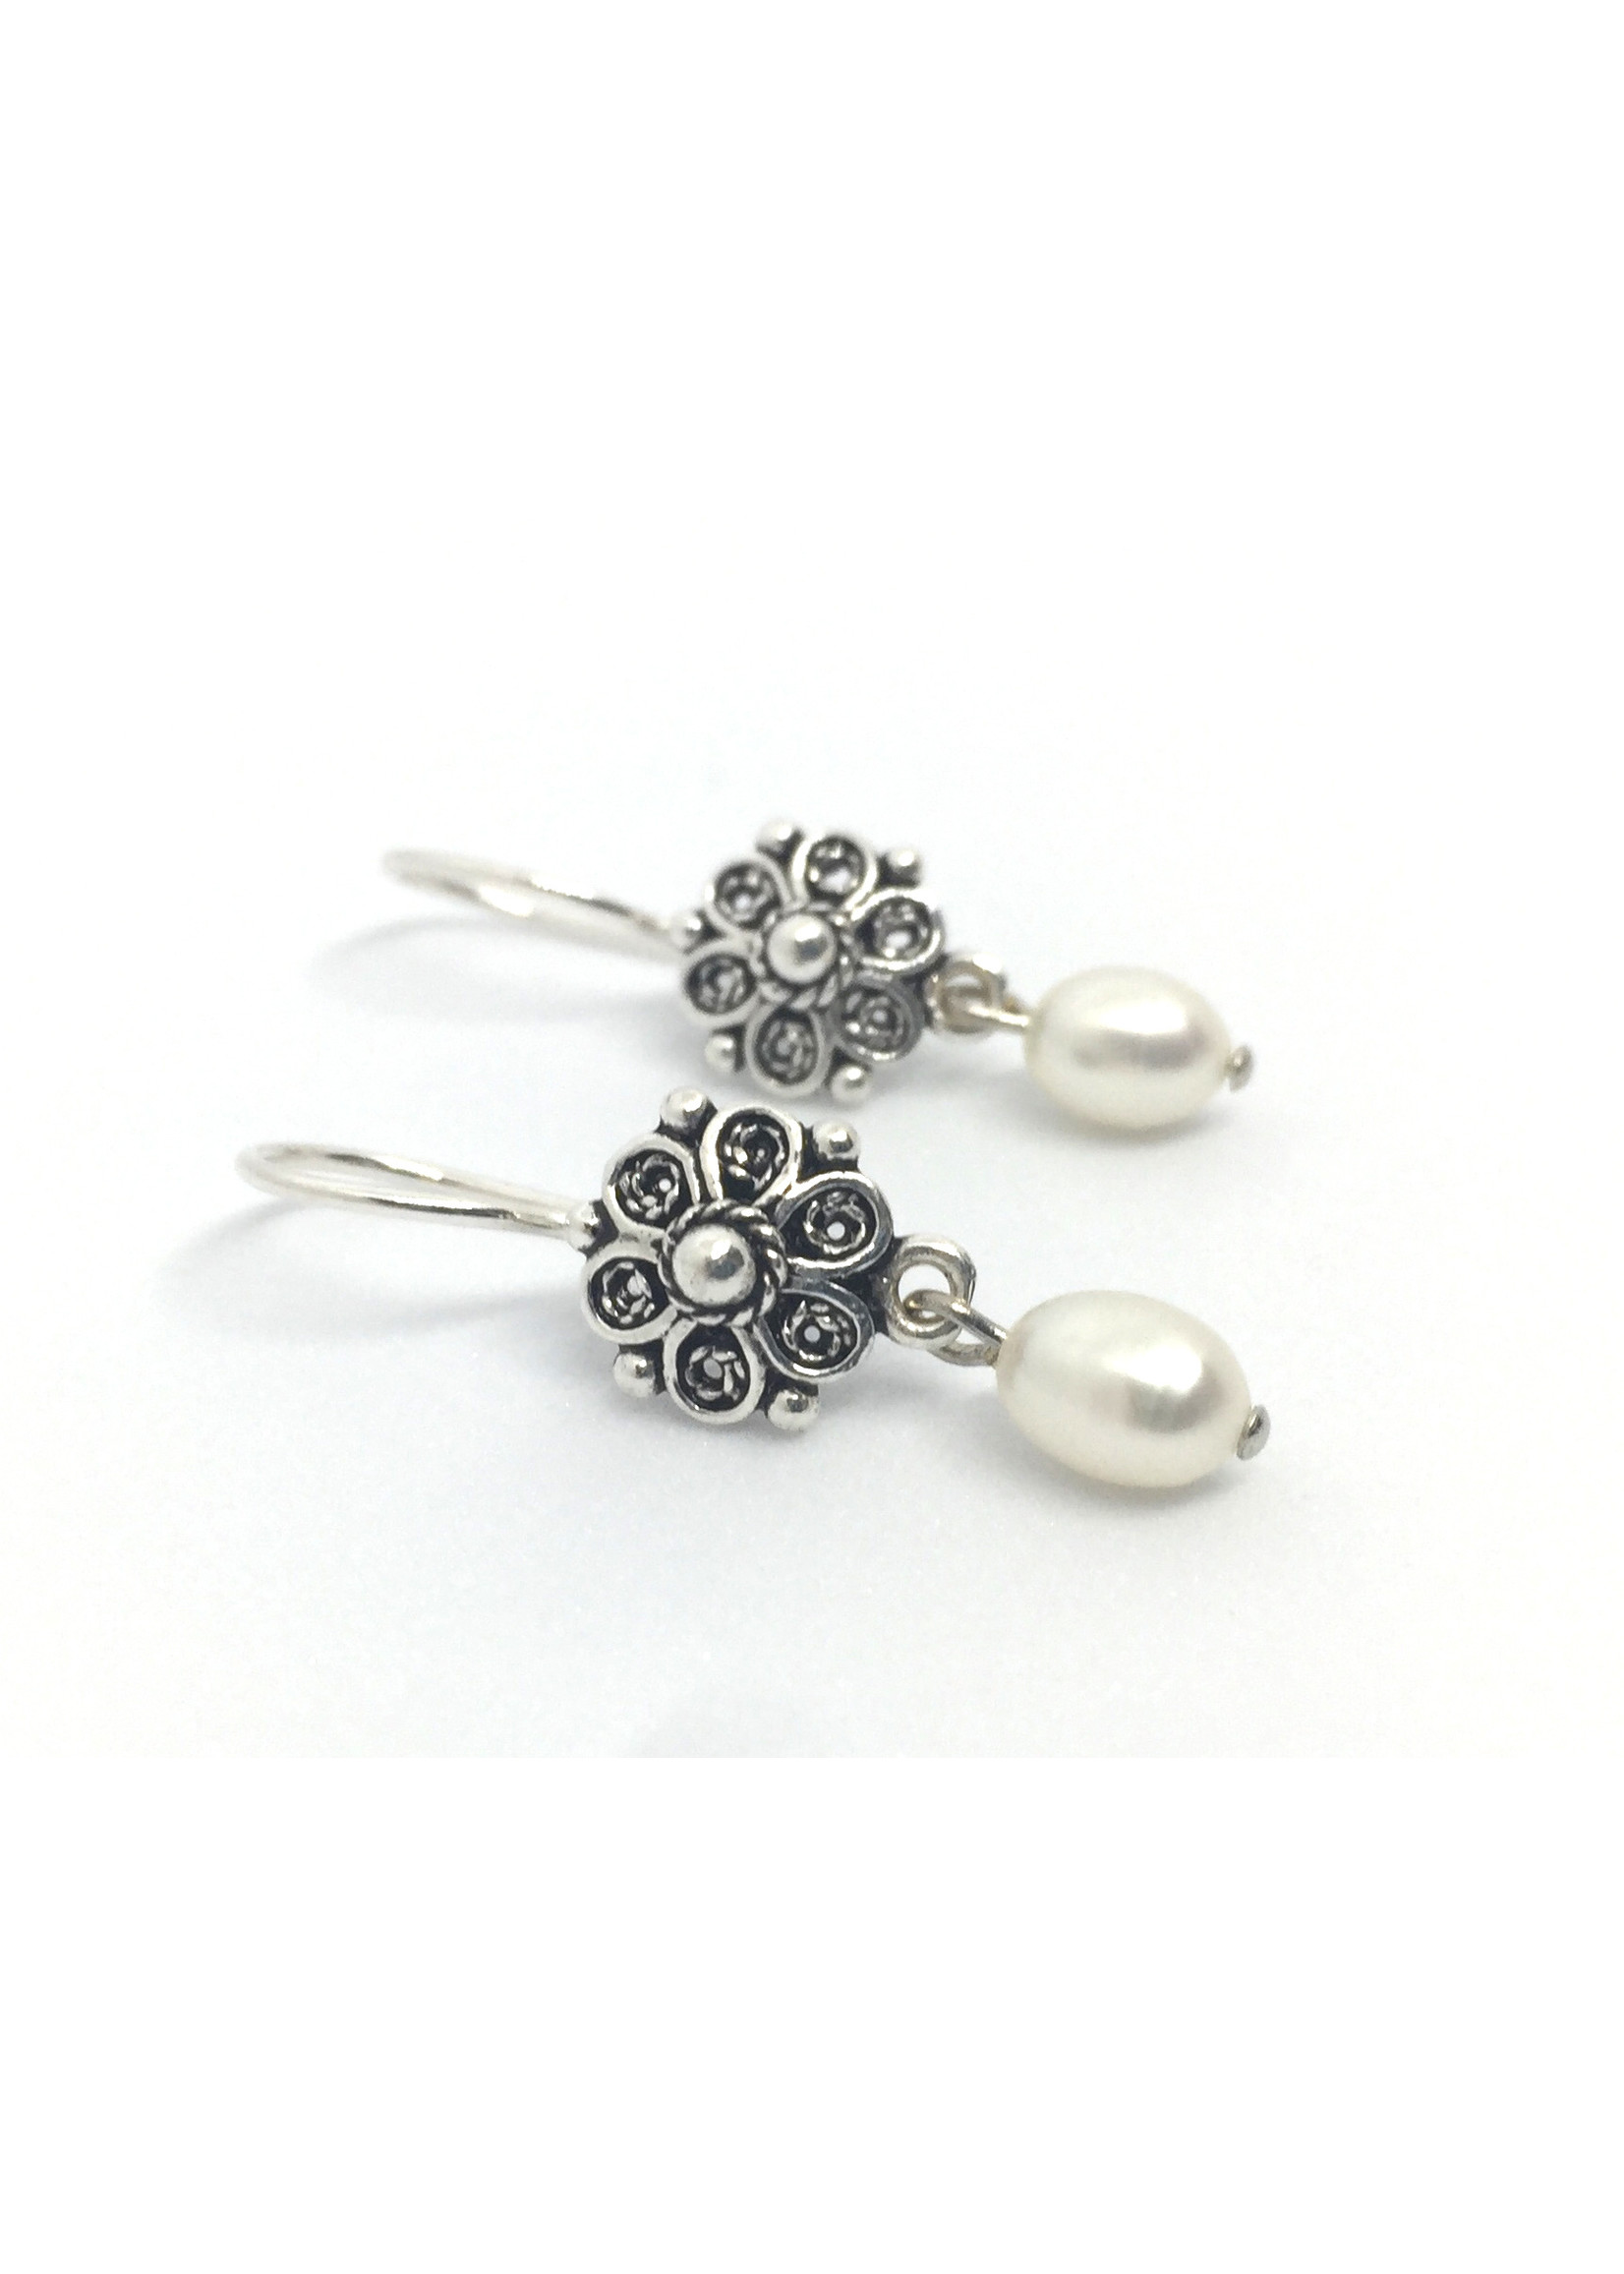 Silver earrings from Els de Ruyter with freshwater pearls